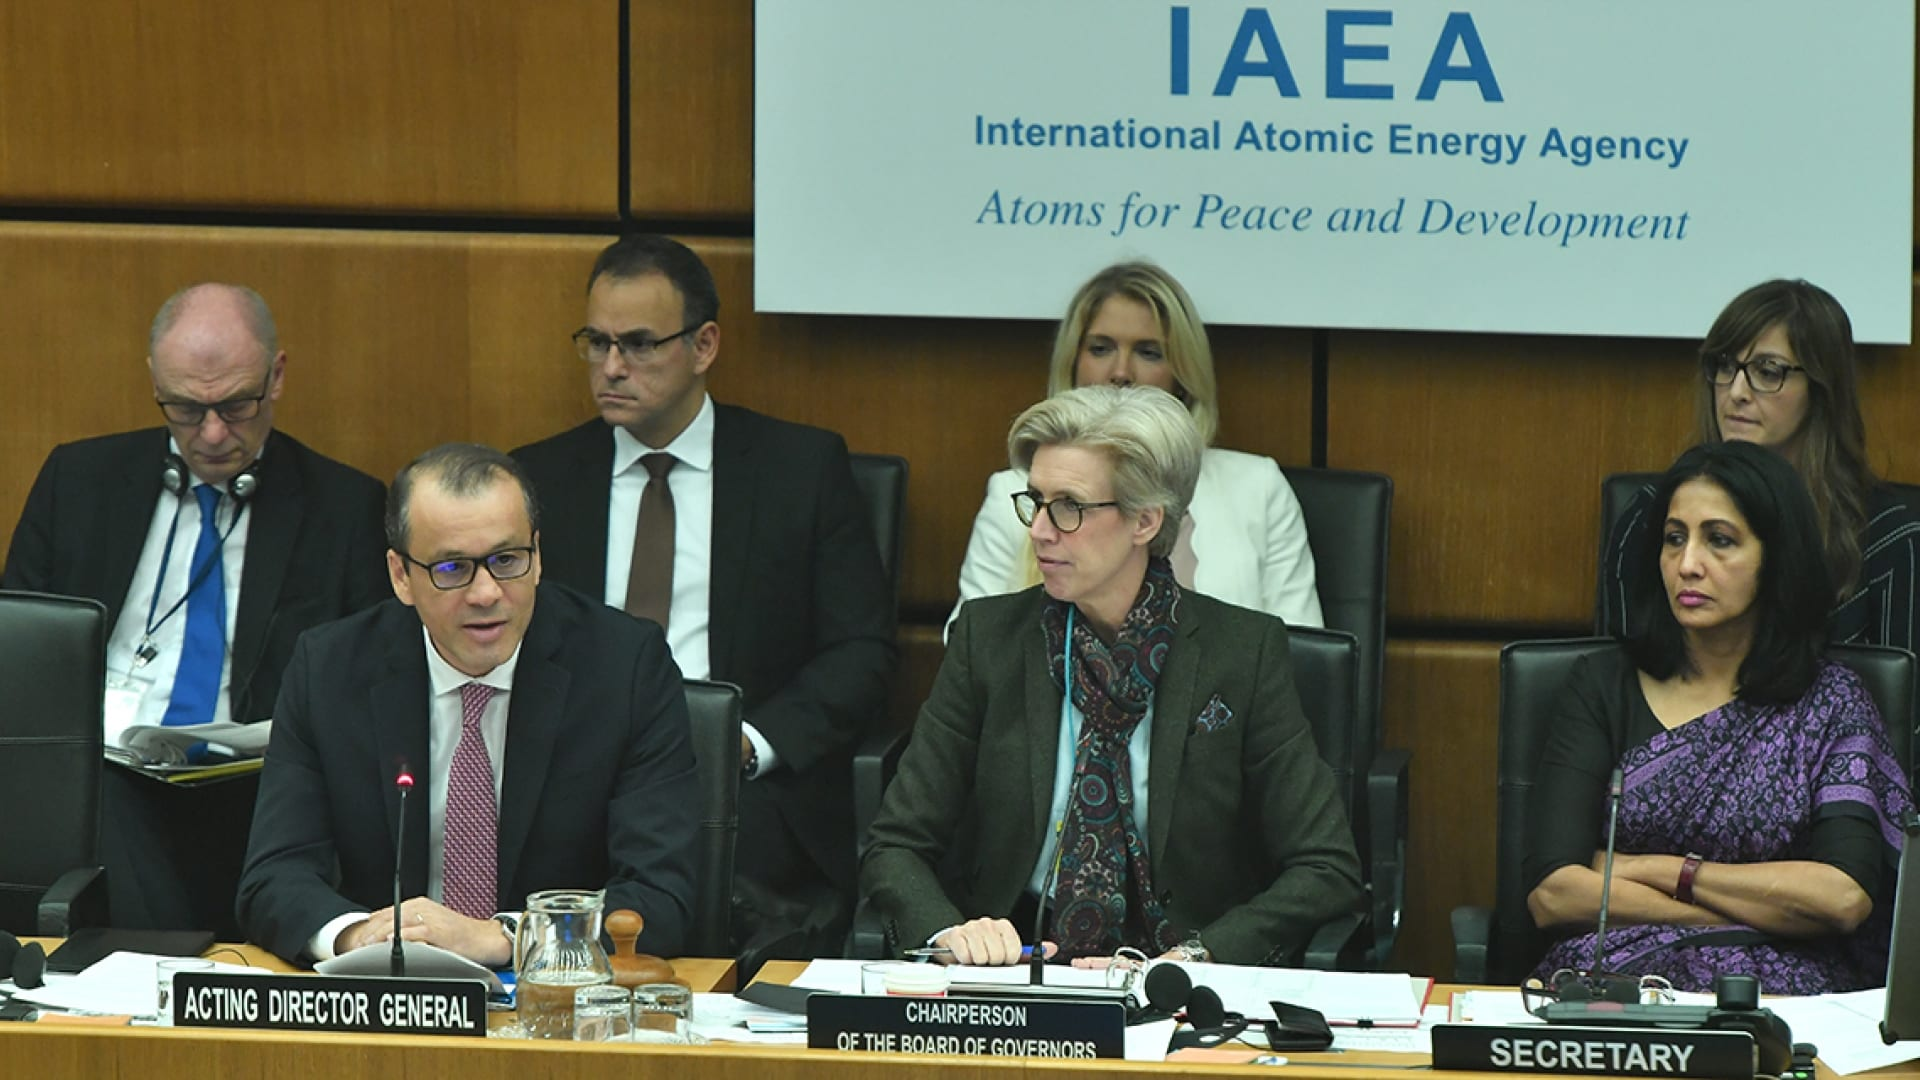 International Atomic Energy Agency Acting Director General Urges Iran to Fully Cooperate